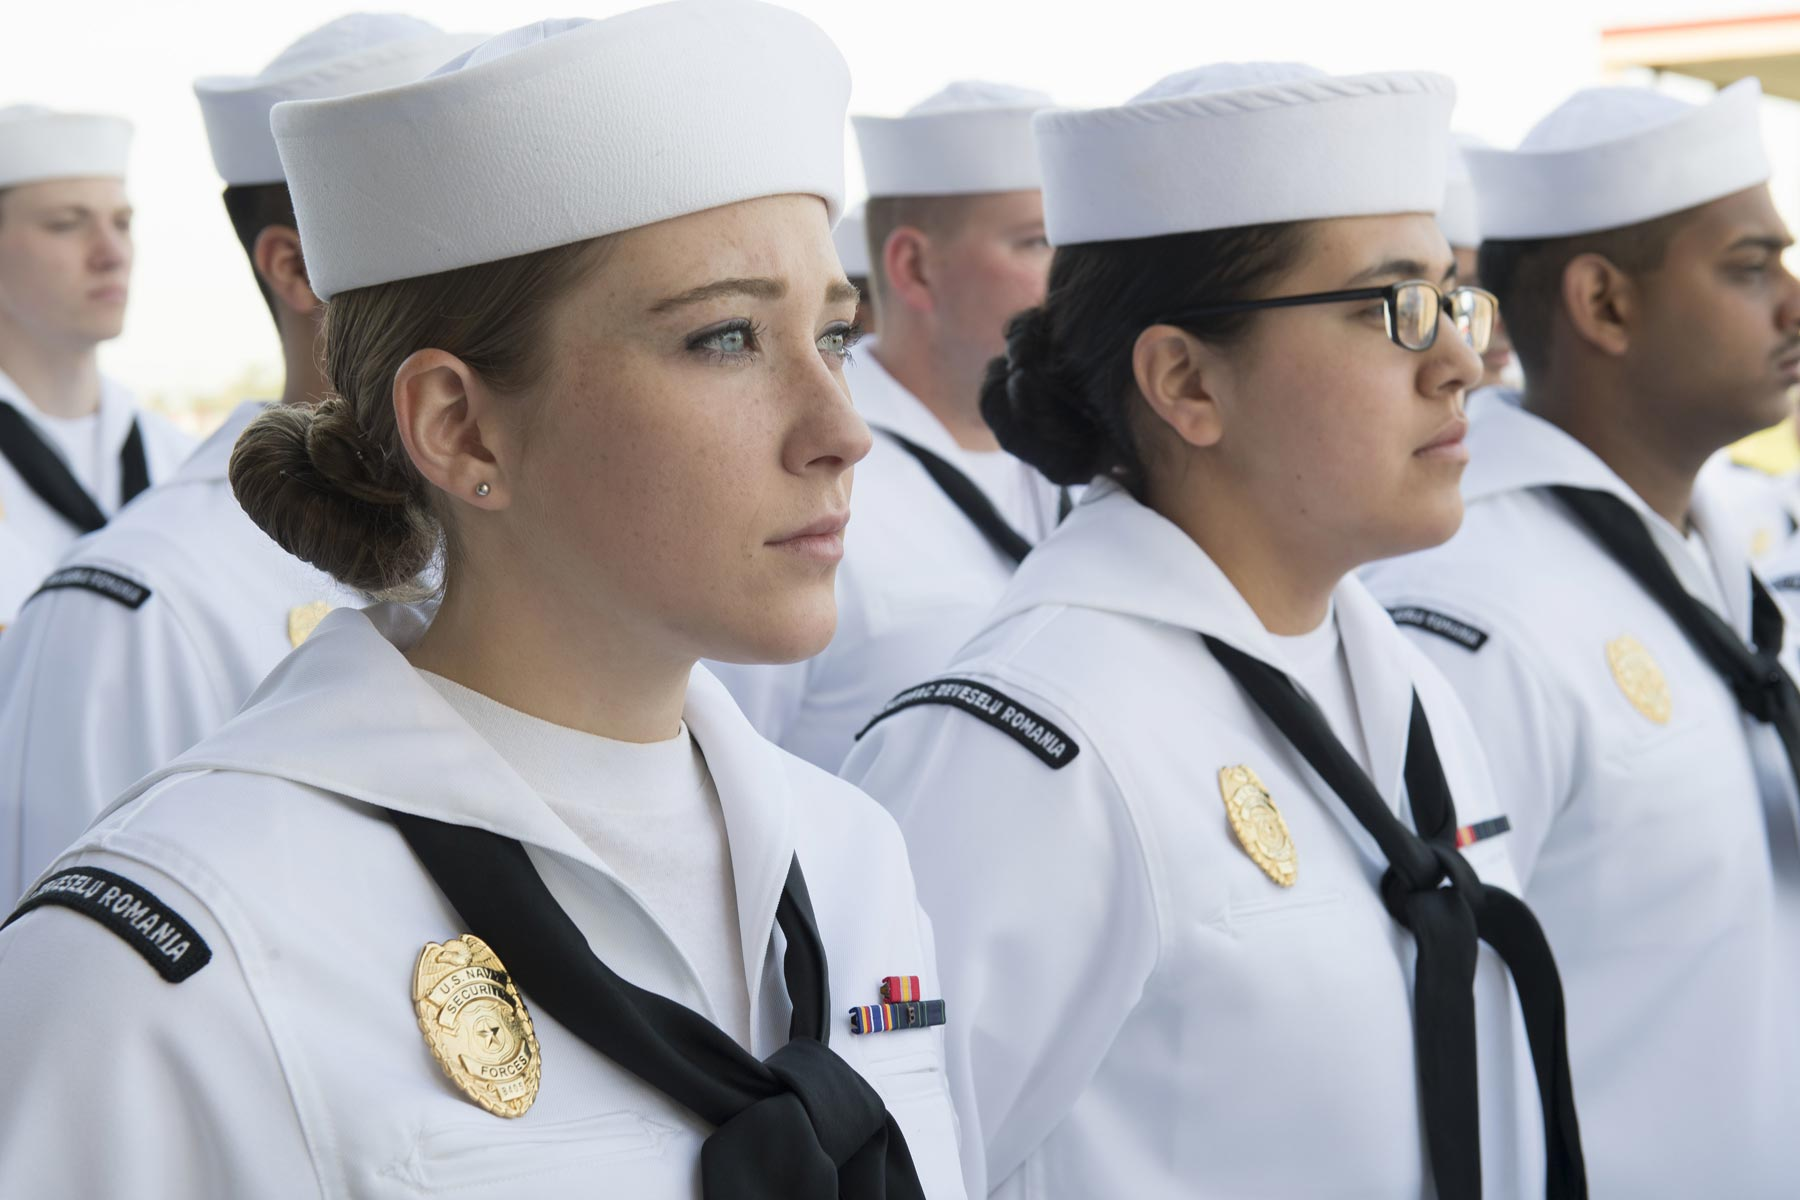 Navy OKs Ponytails Locks and Other Hairstyles for Female Sailors  Militarycom